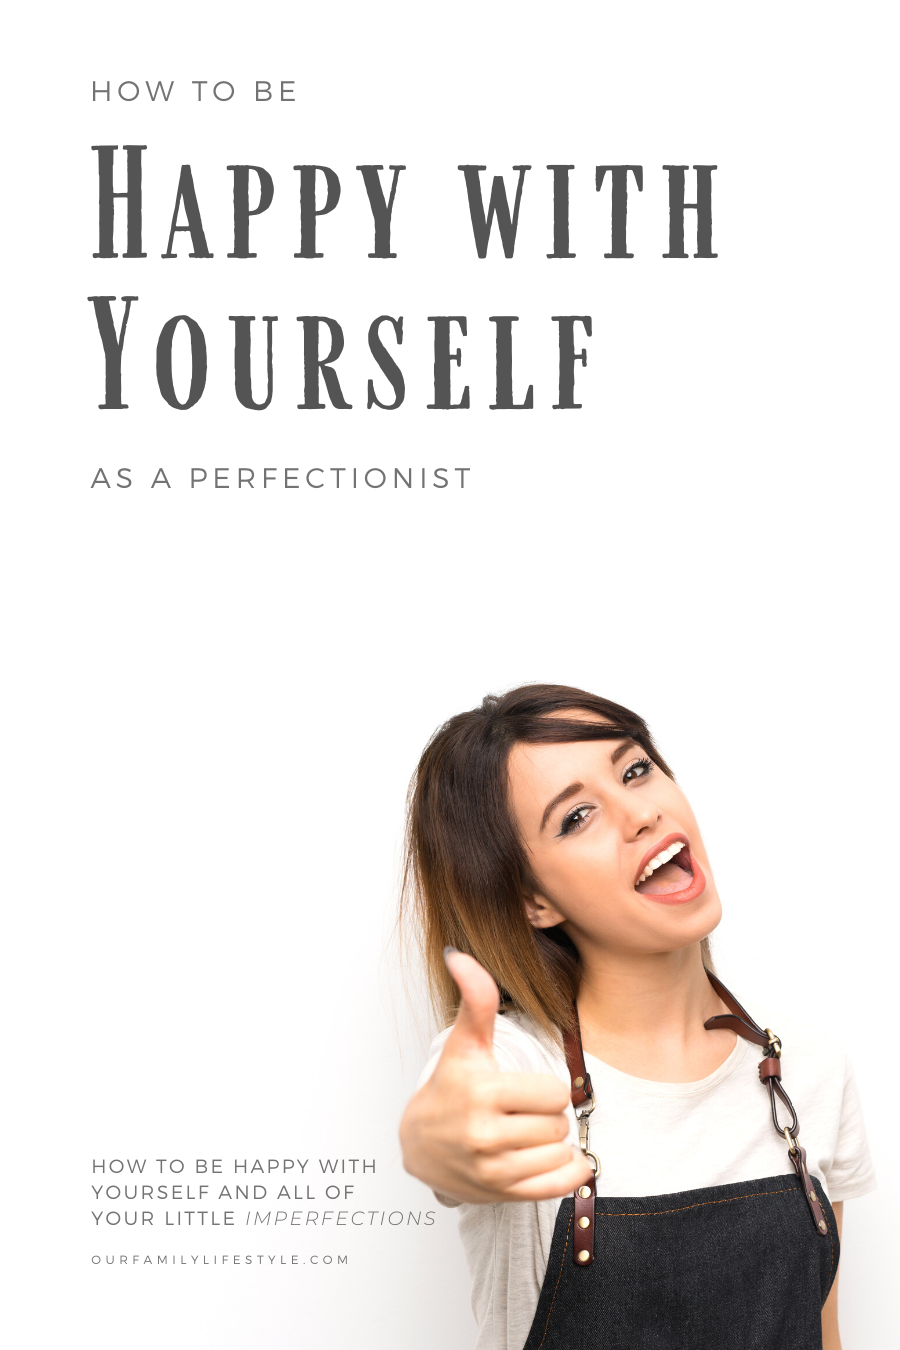 How to Be Happy with Yourself as a Perfectionist